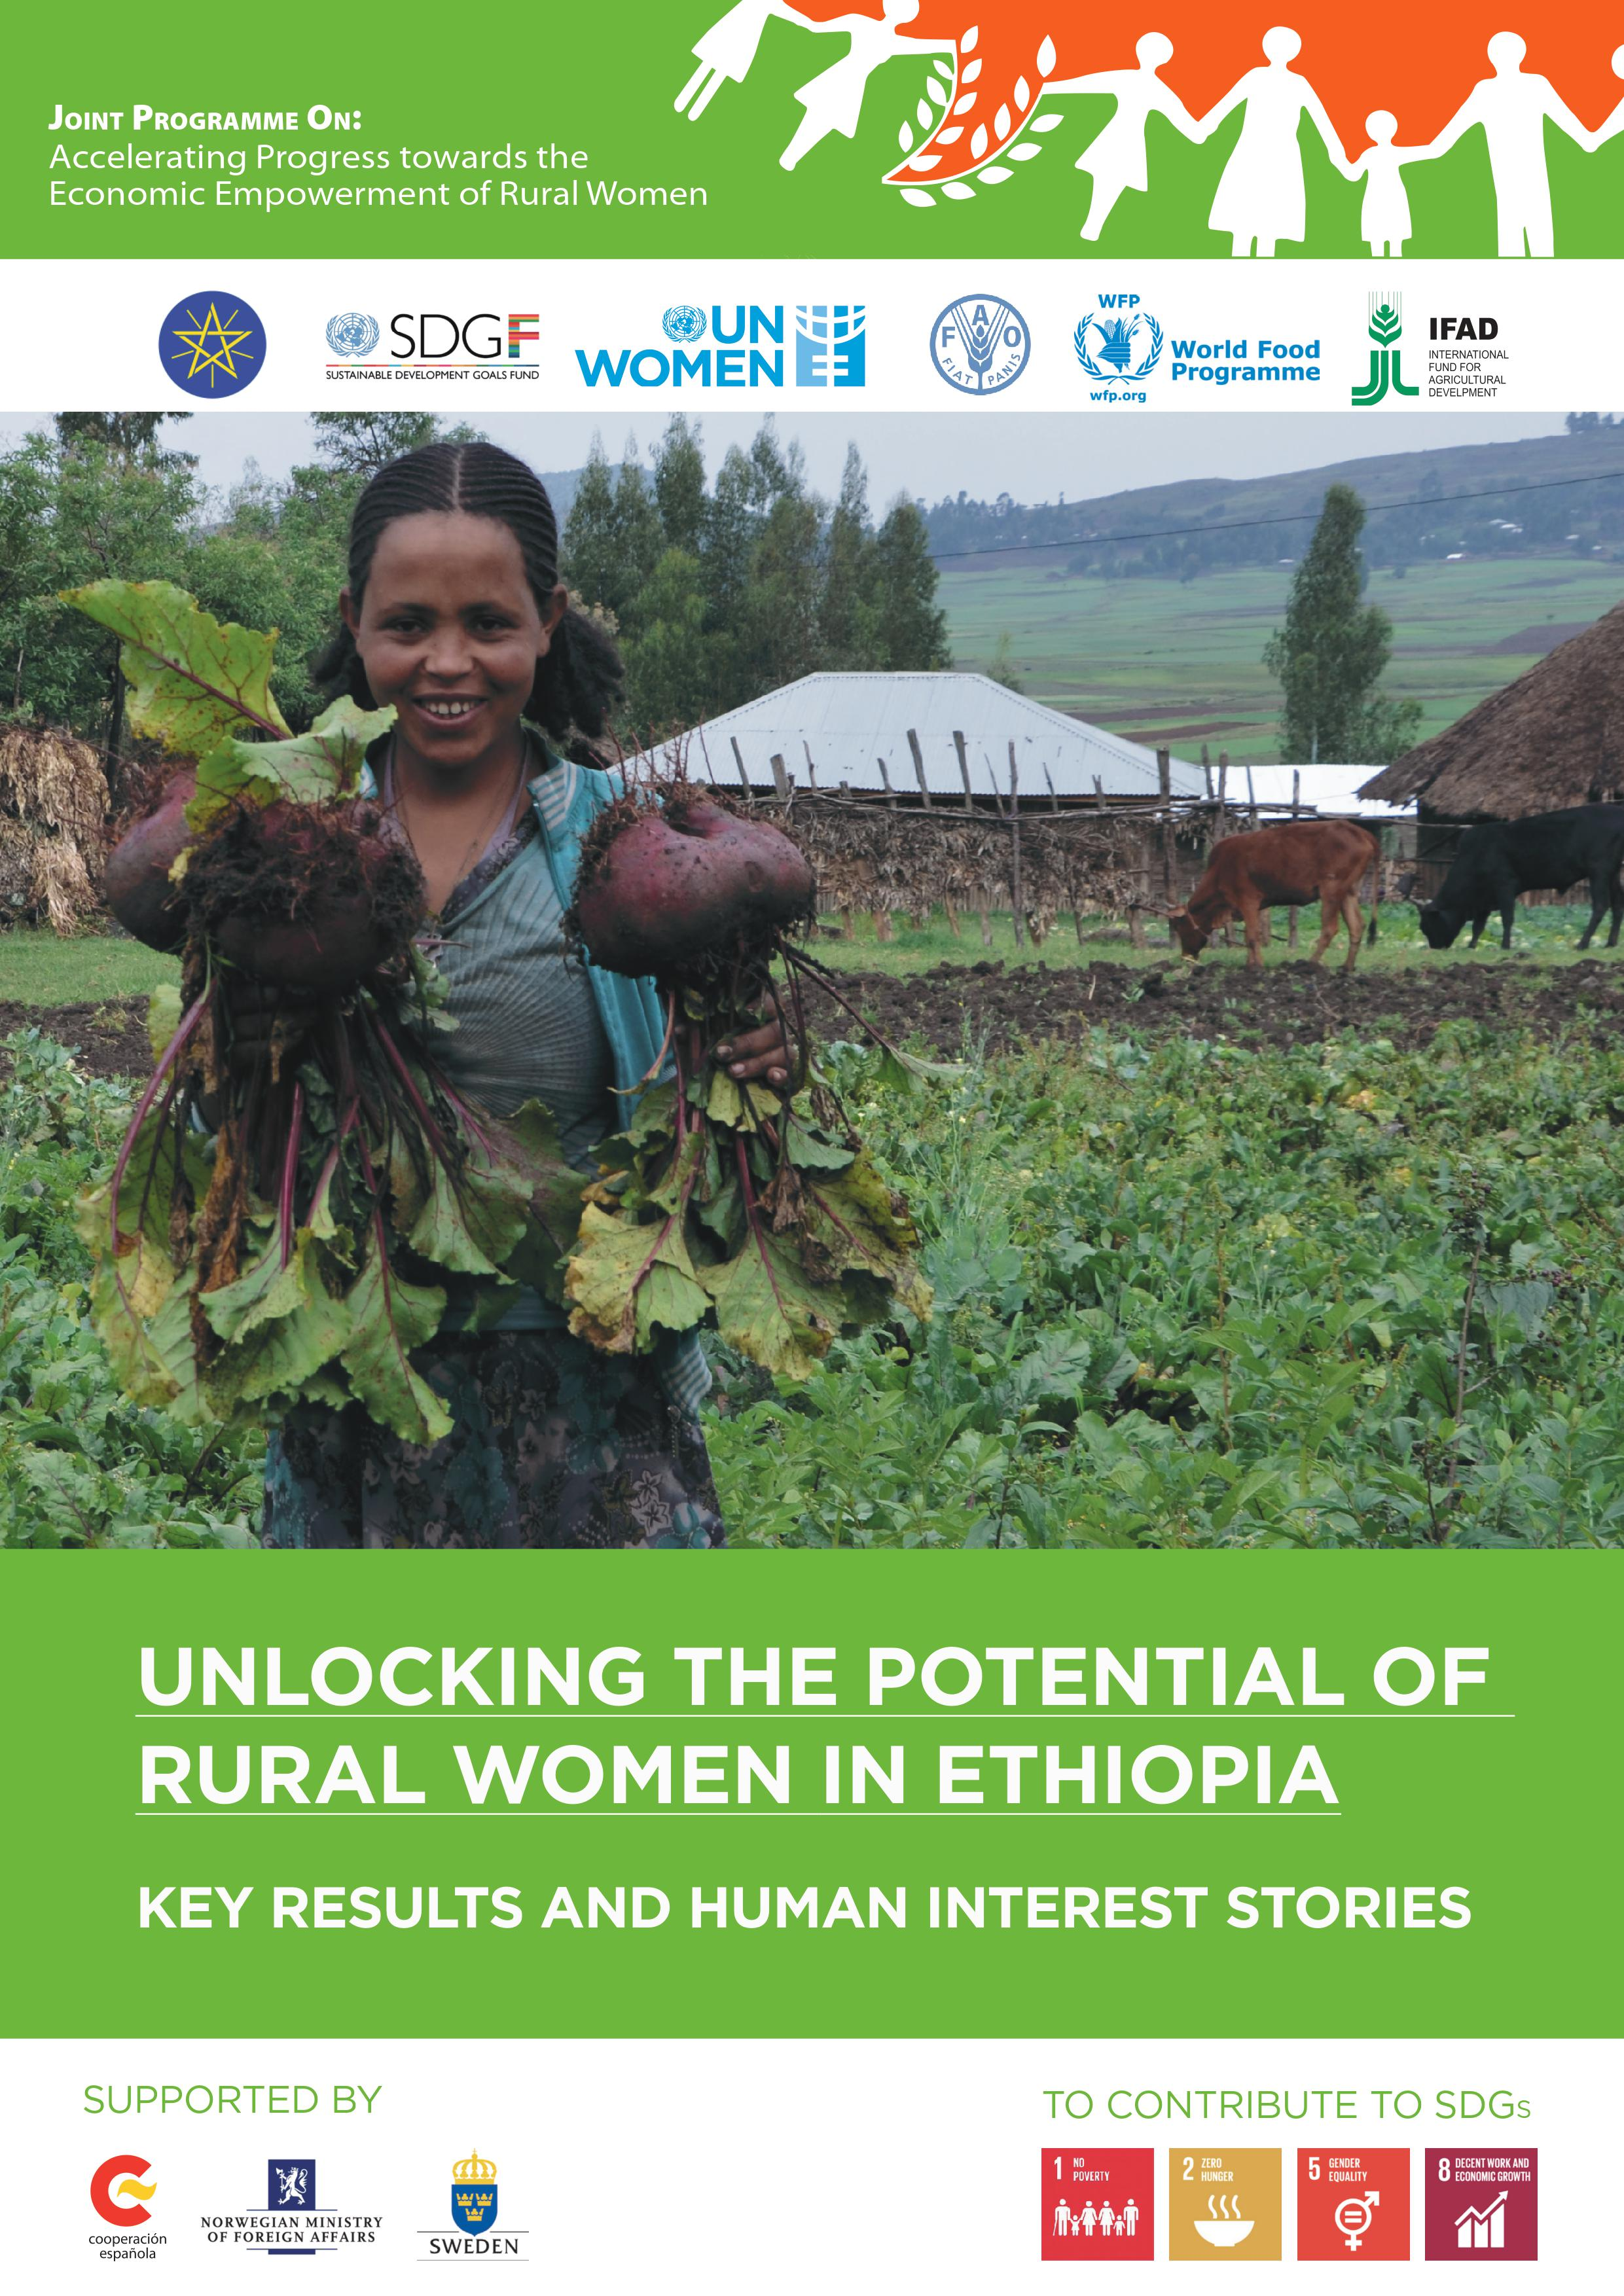 Unlocking the Potential of Rural Women in Ethiopia